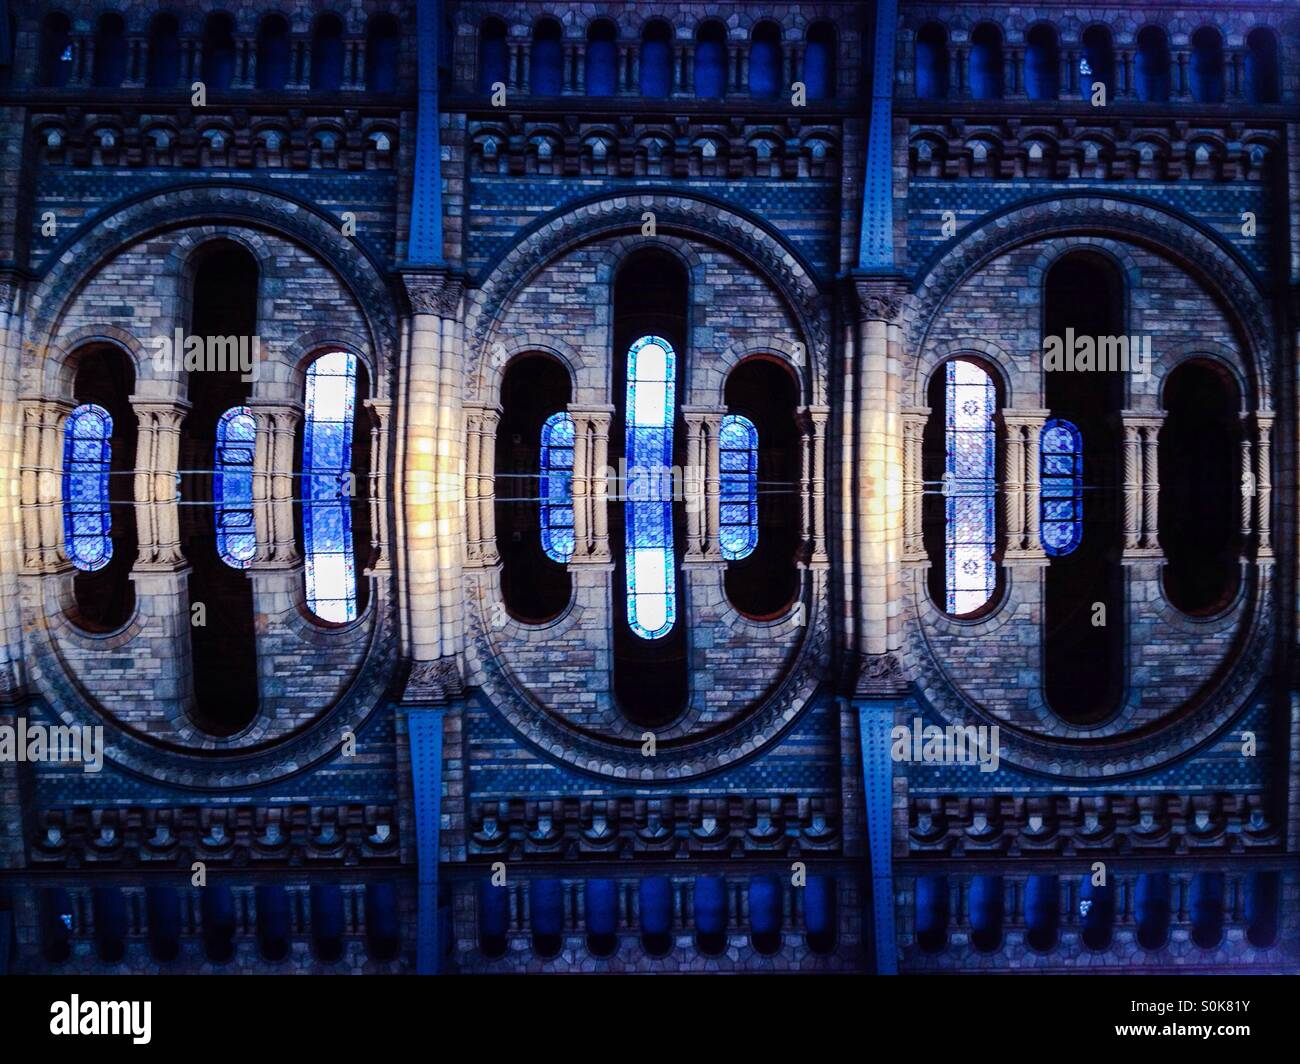 Photo manipulation of arches in the Natural History  Museum - Stock Image